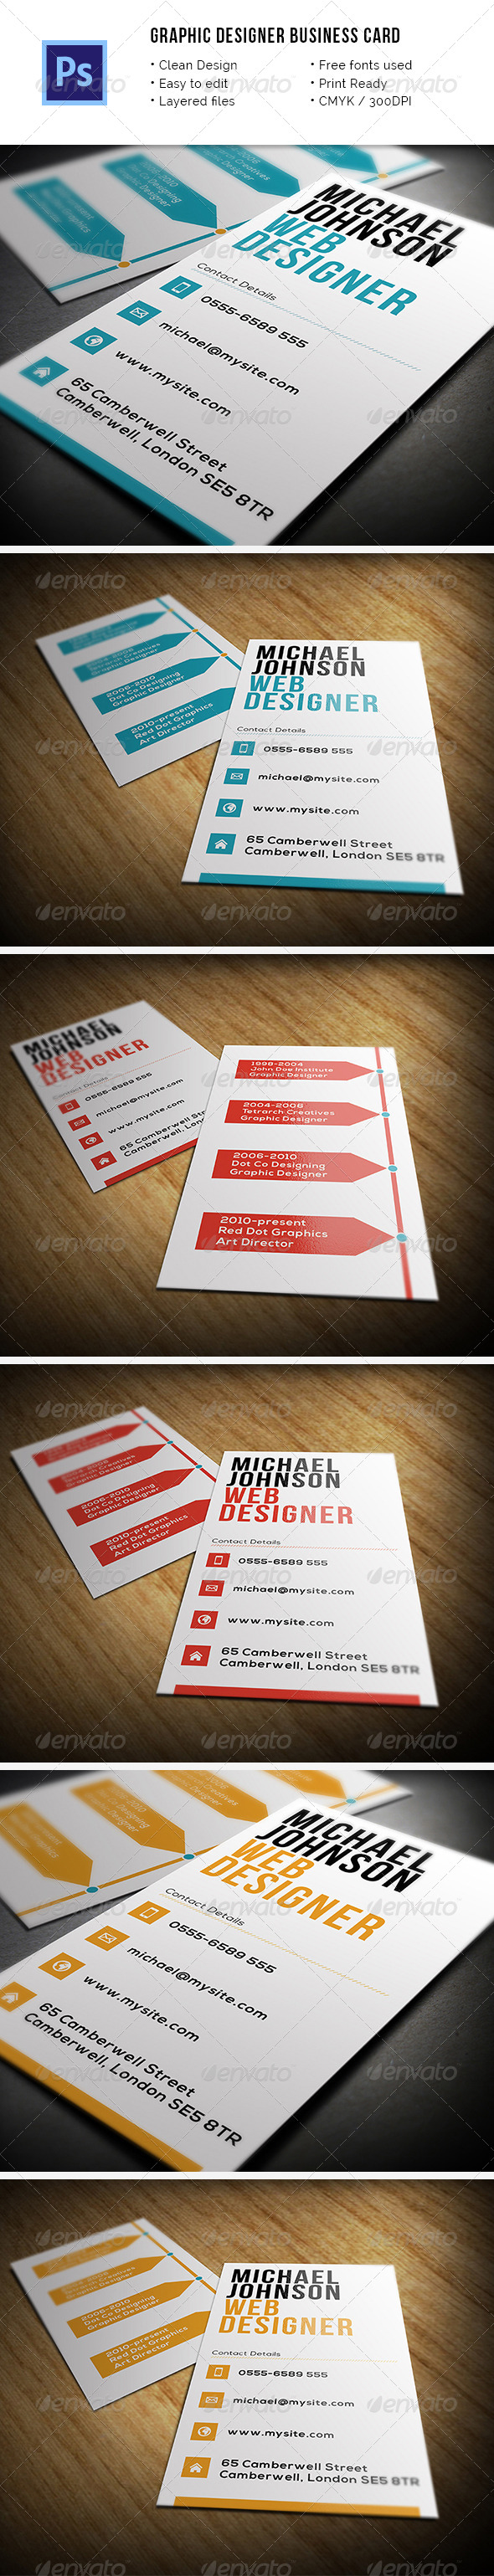 Graphic Designer Business Card - Industry Specific Business Cards